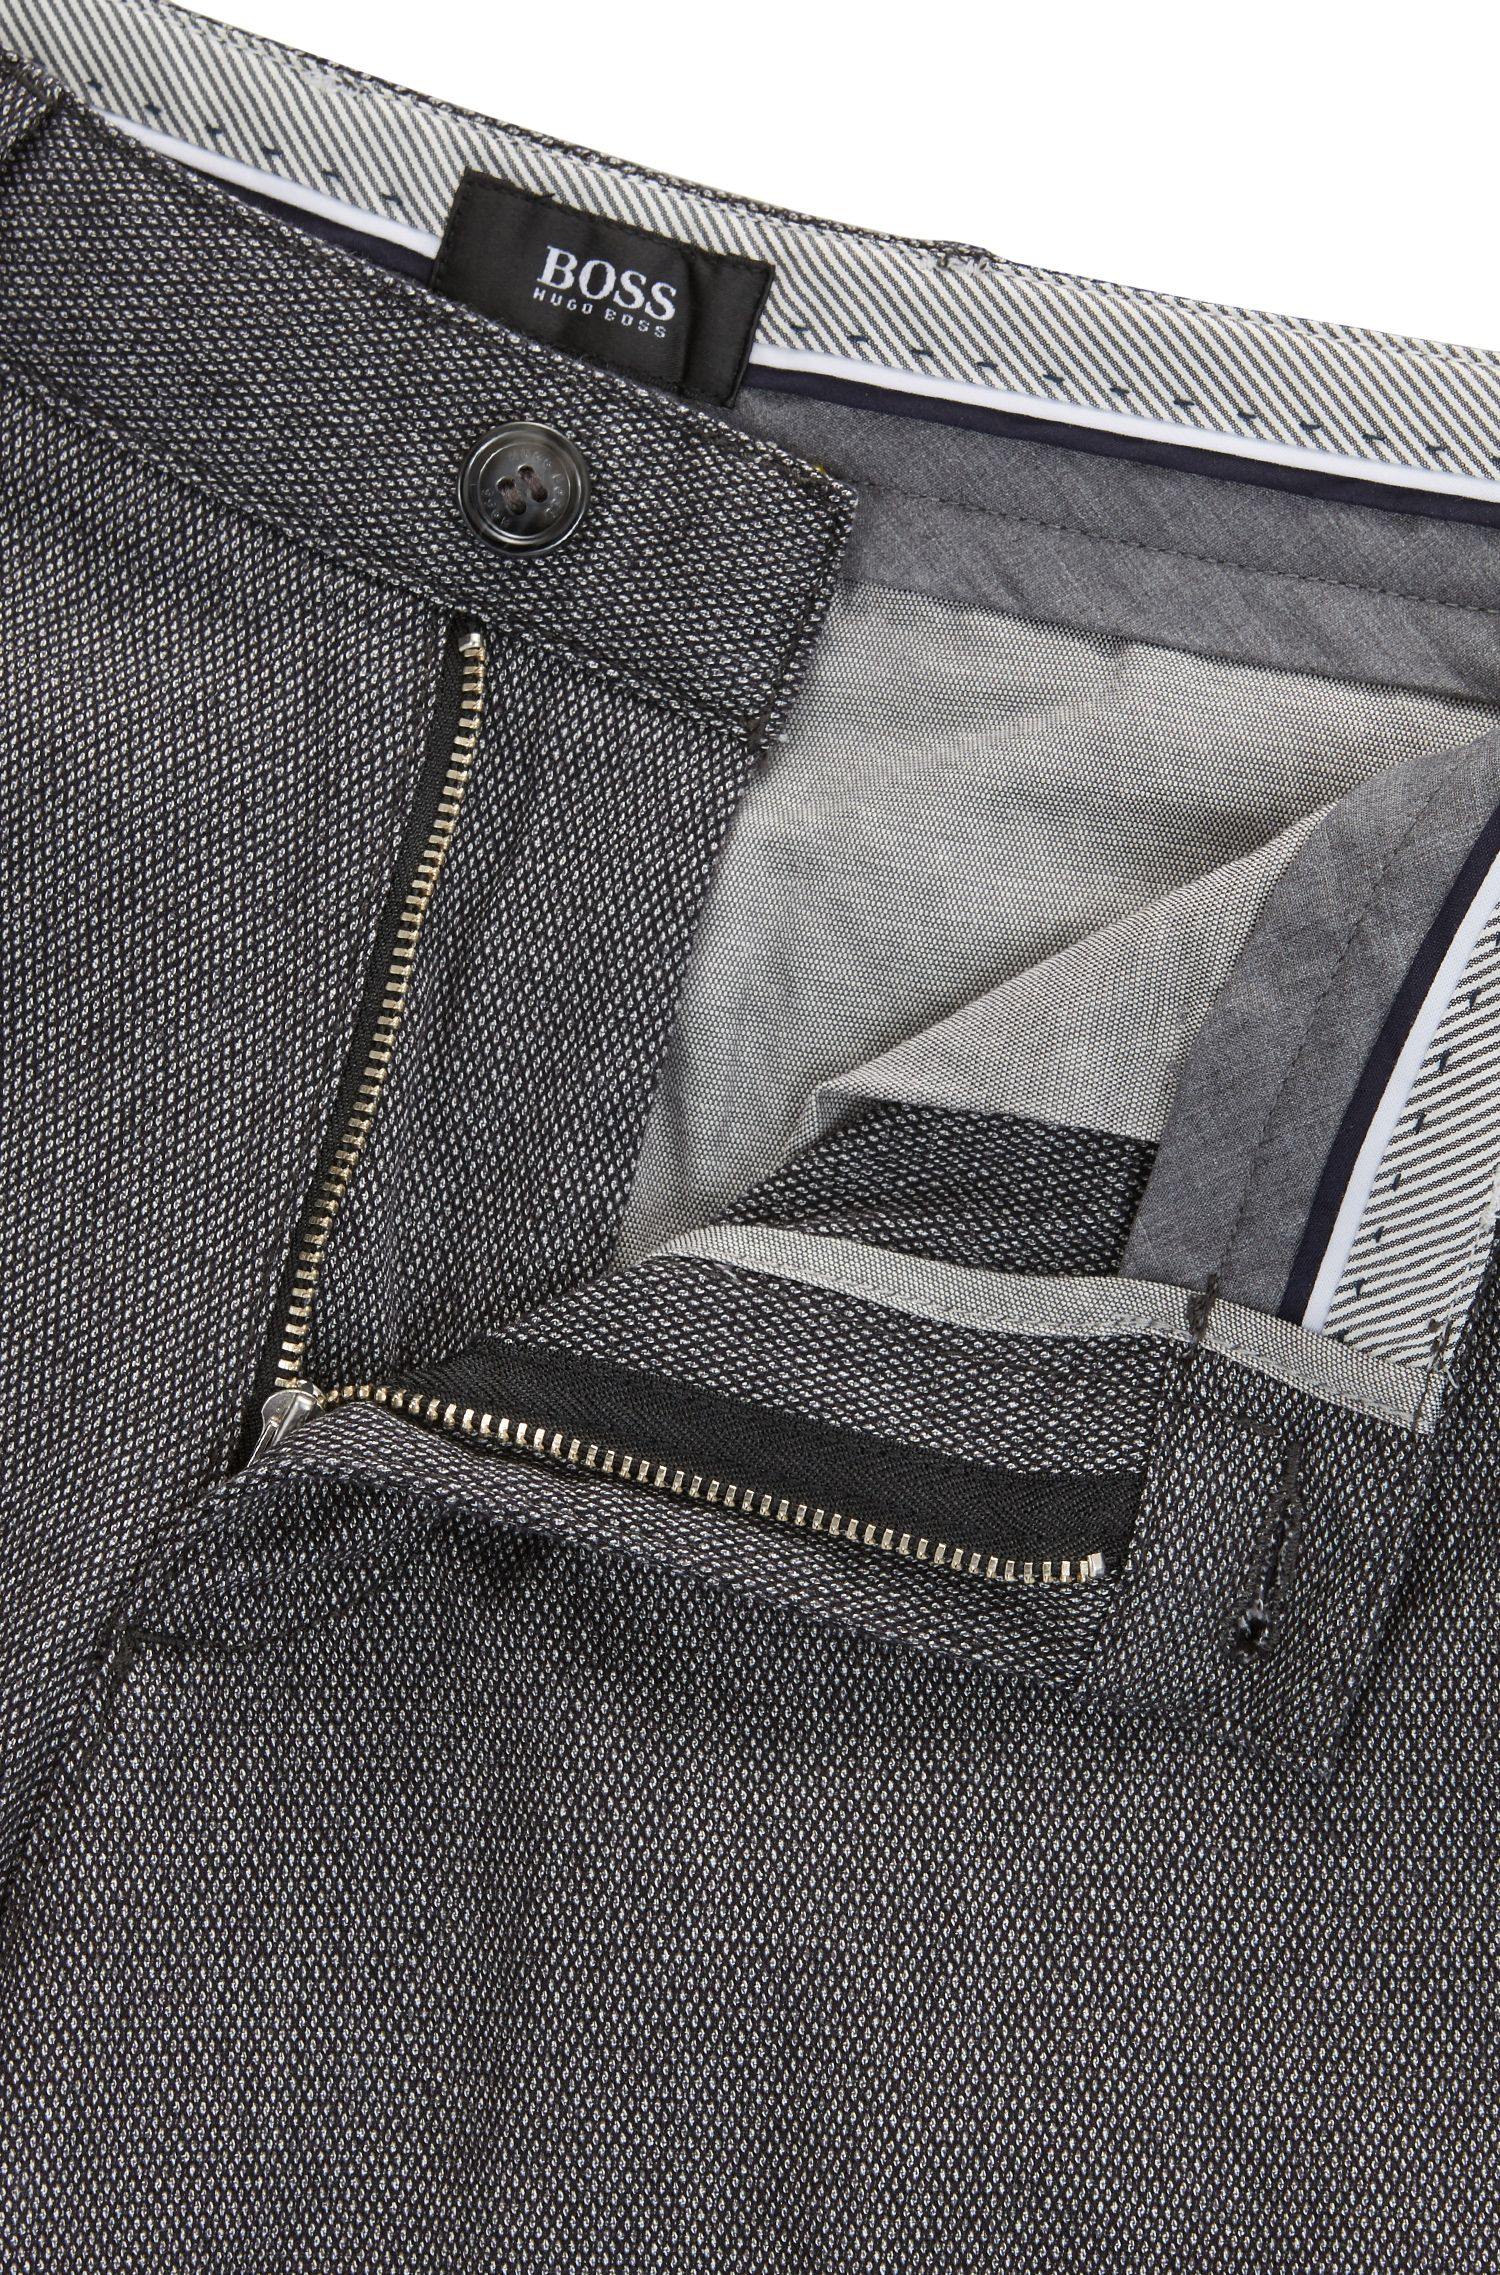 Regular-Fit Chino aus melierter Baumwolle